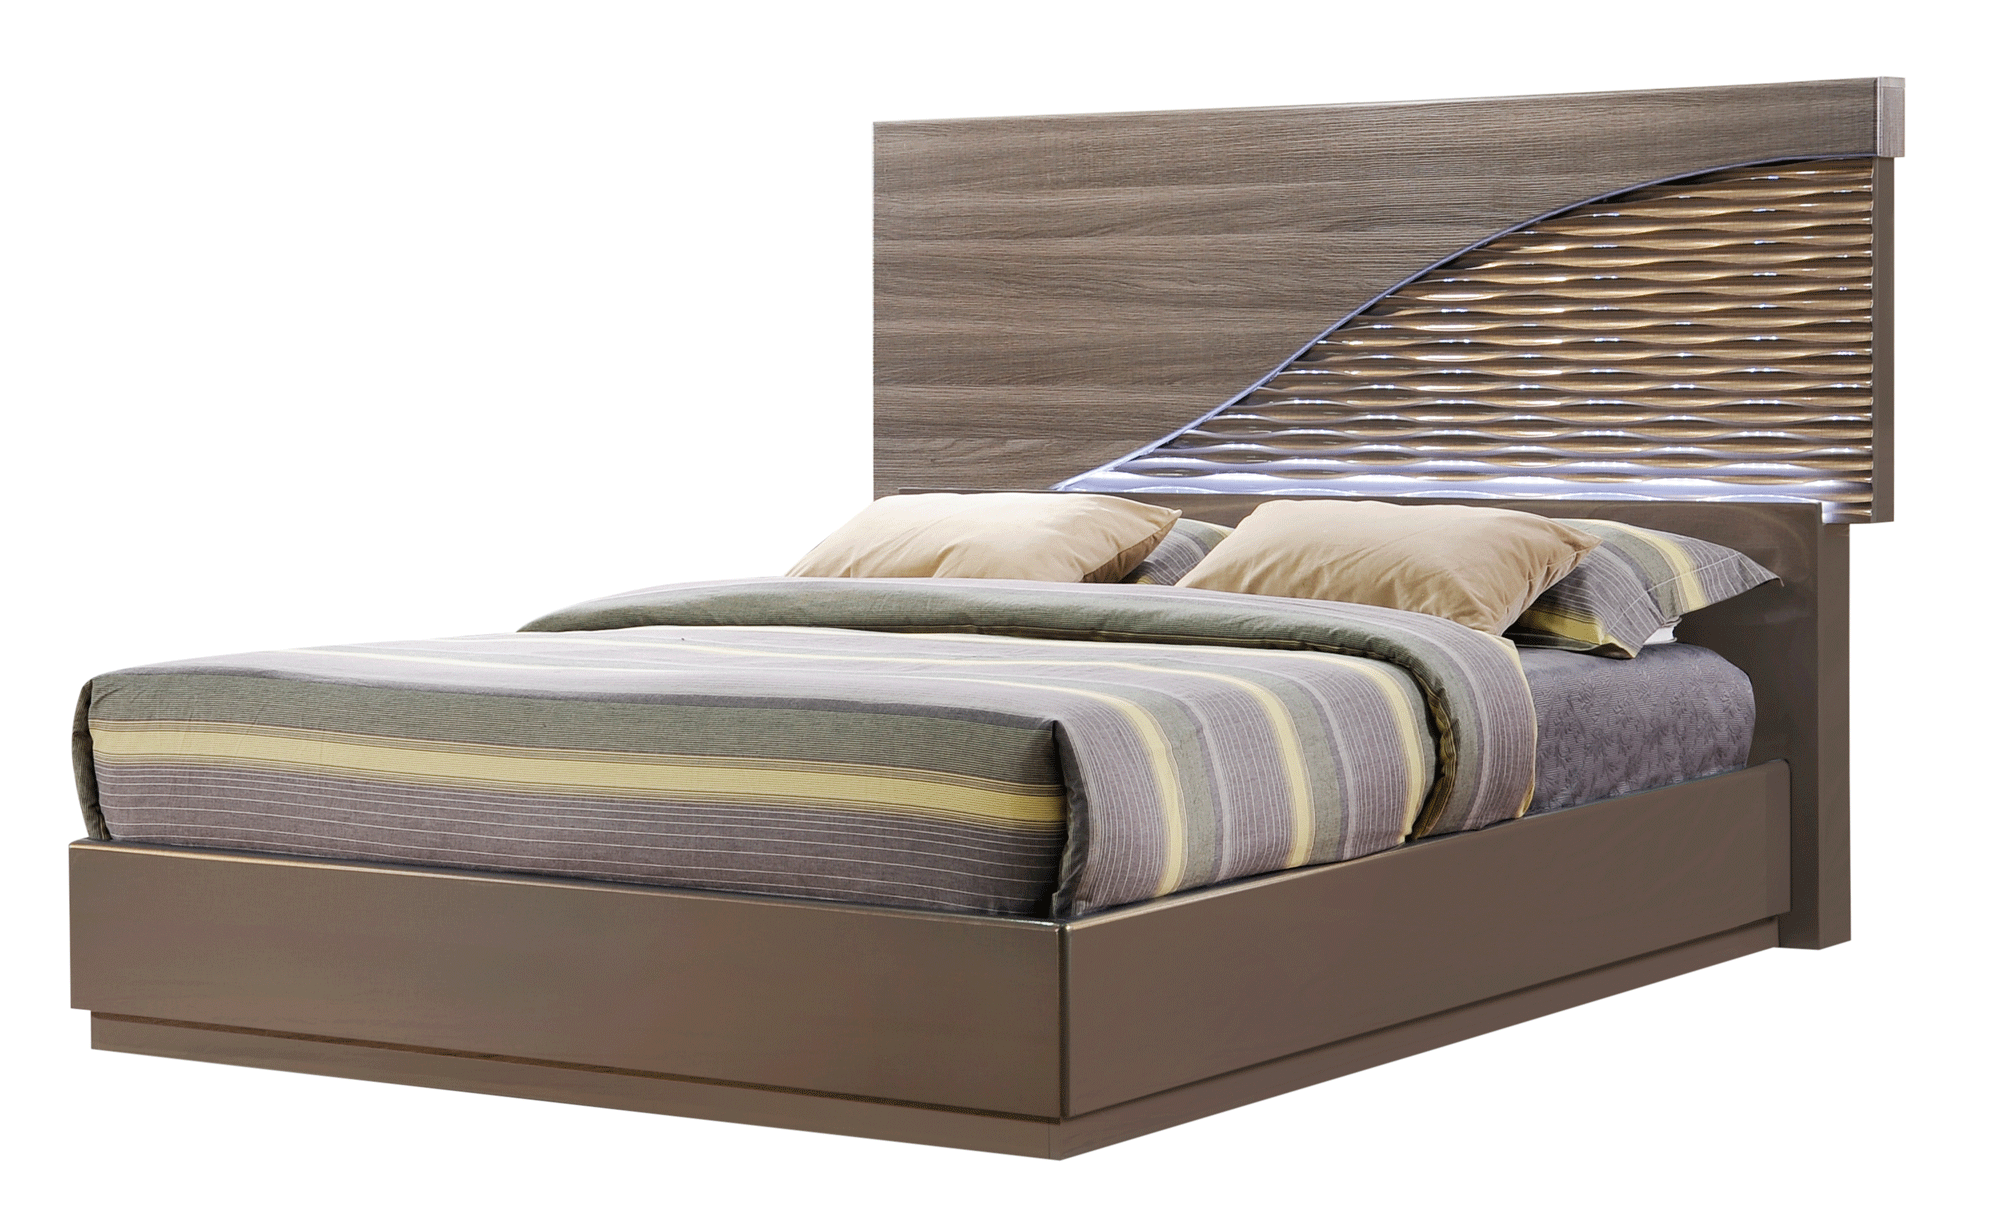 North Zebra Wood/Gold Line Bedroom Set by Global Furniture